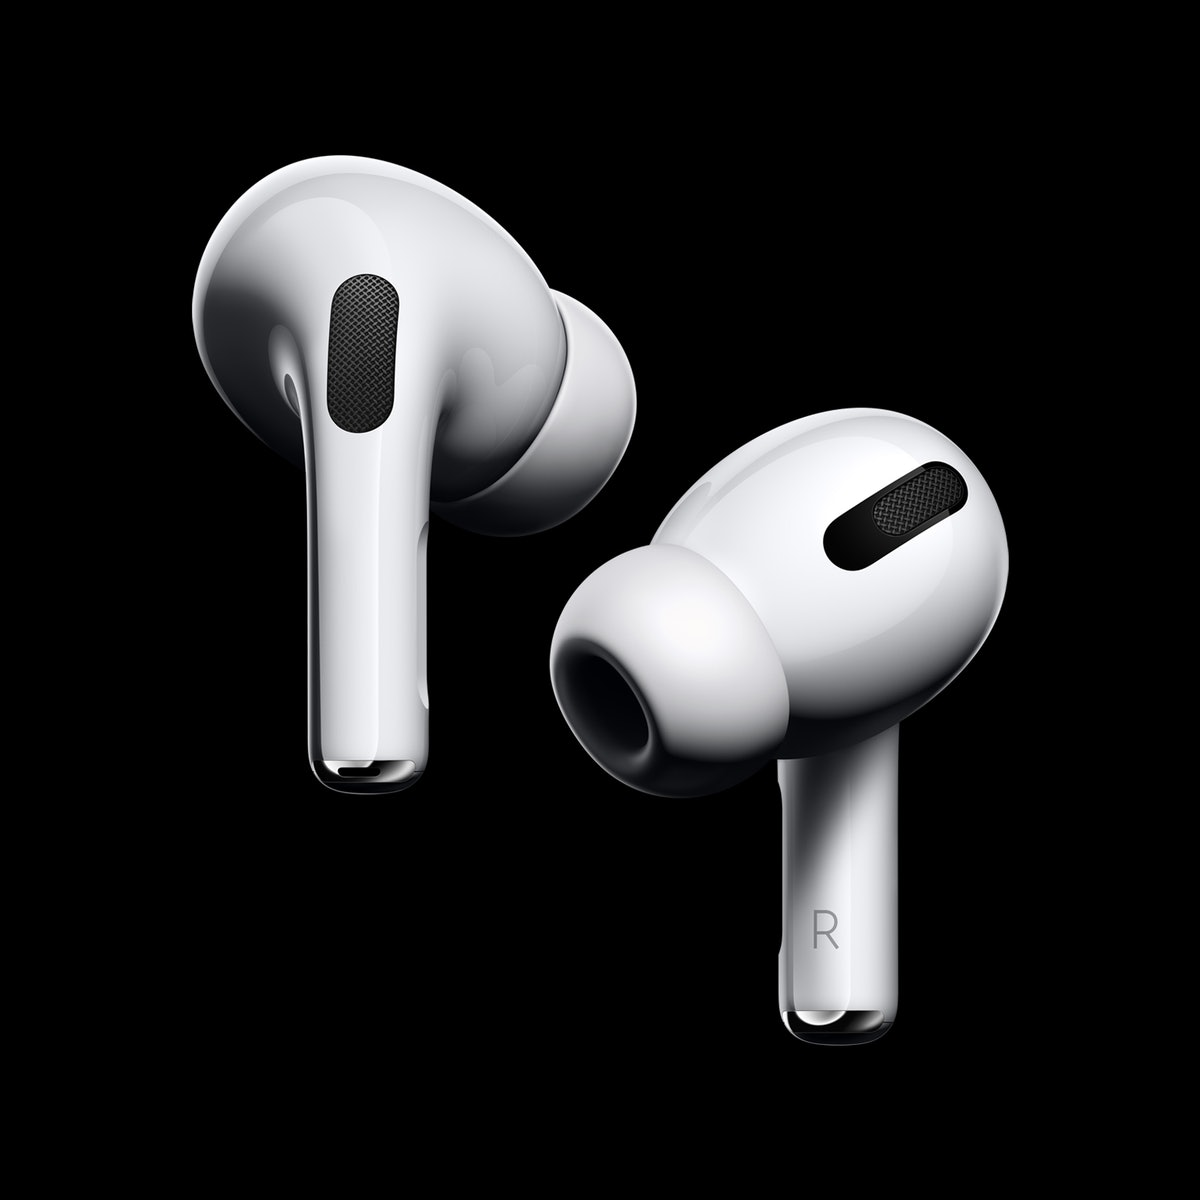 Apple's New AirPods Pro Headphones include a noise-cancelling feature.